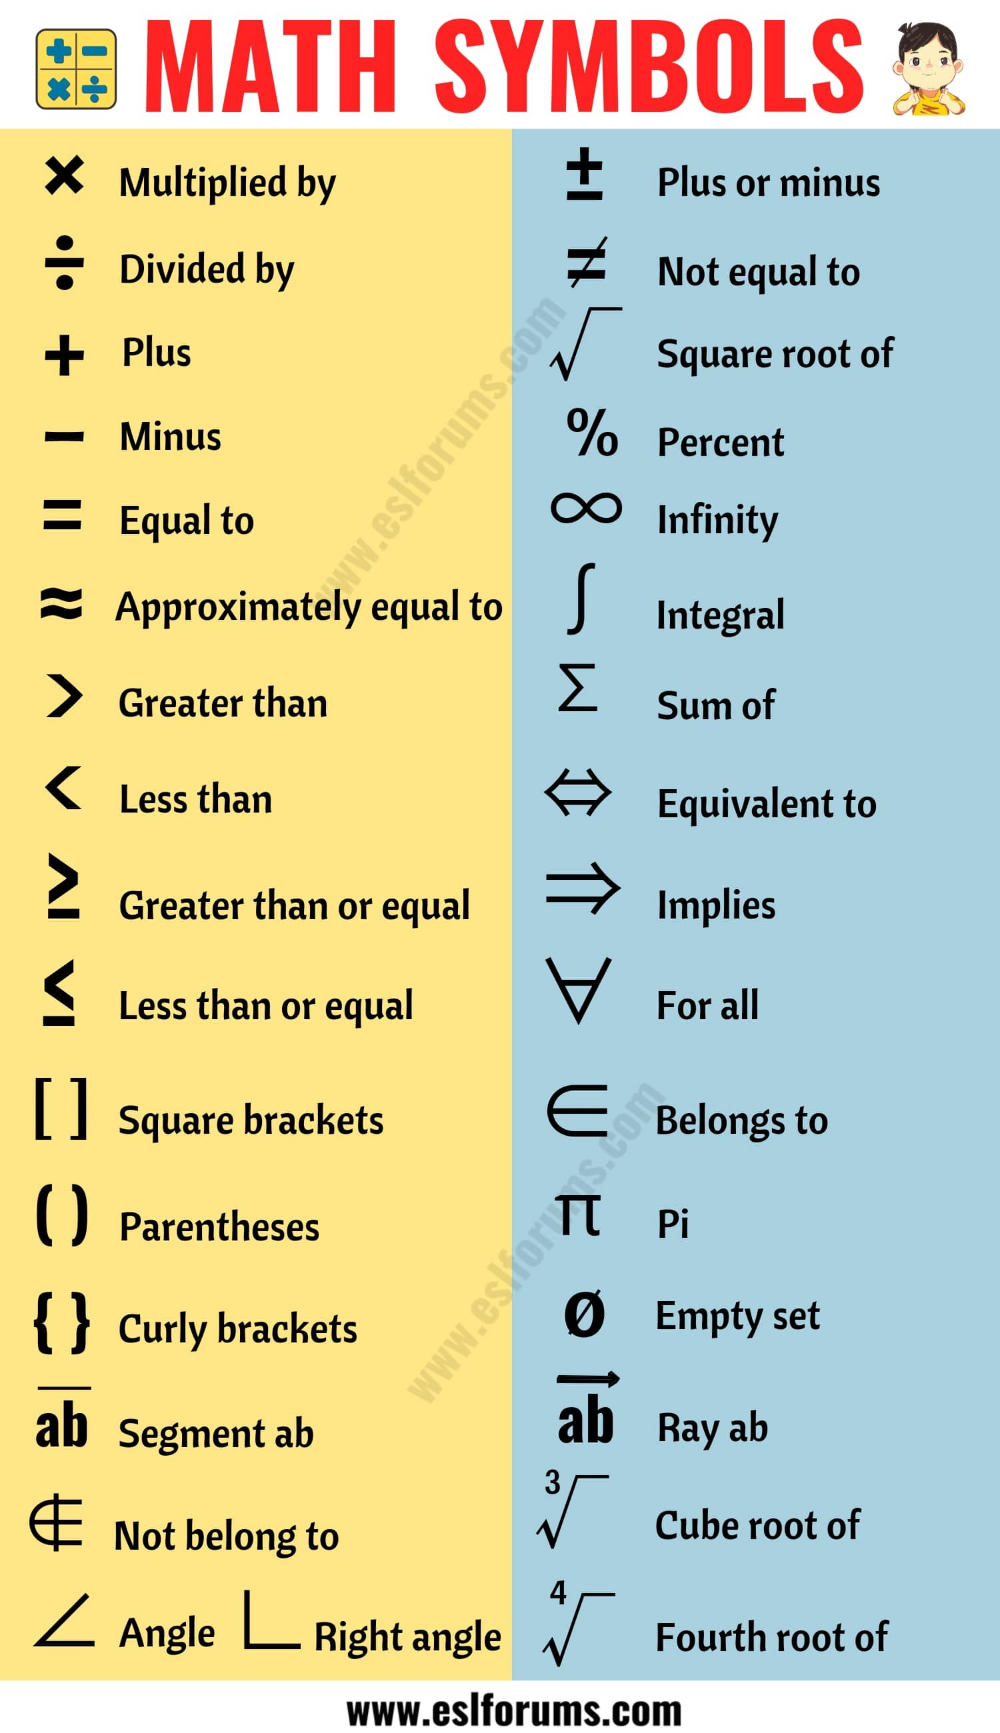 Math Symbols List Of 35 Useful Mathematical Symbols And Their